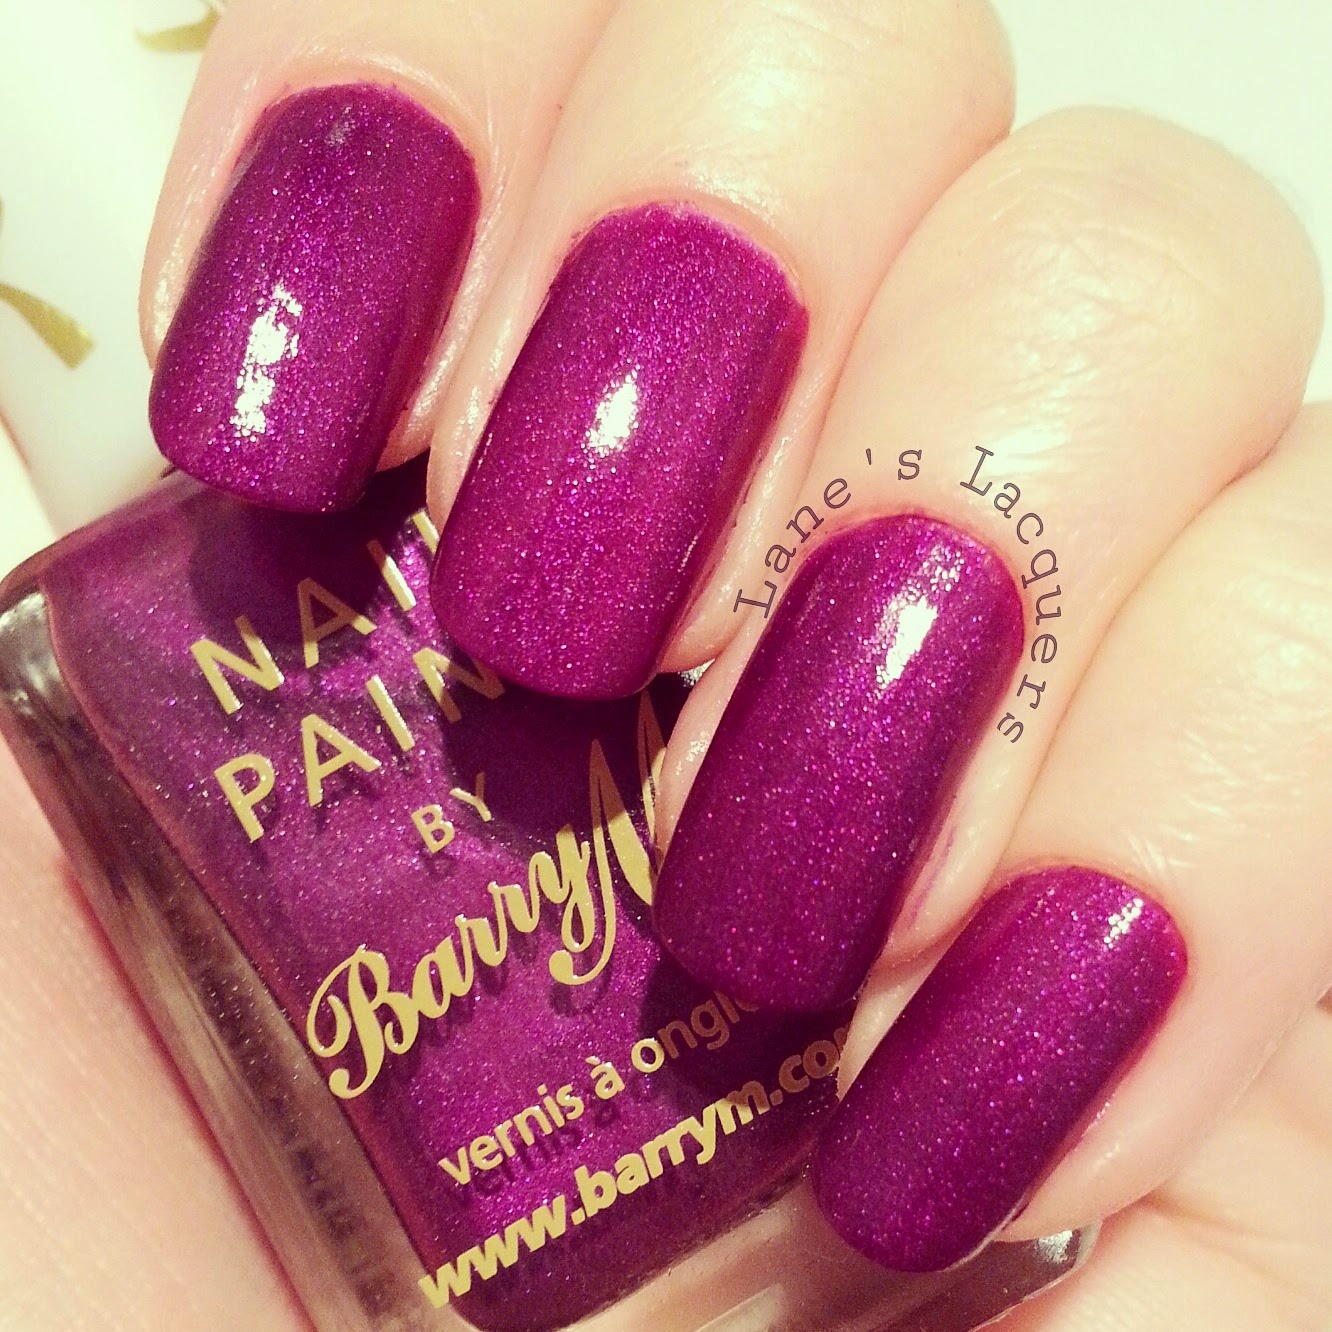 new-barry-m-silk-orchid-swatch-manicure-with-topcoat